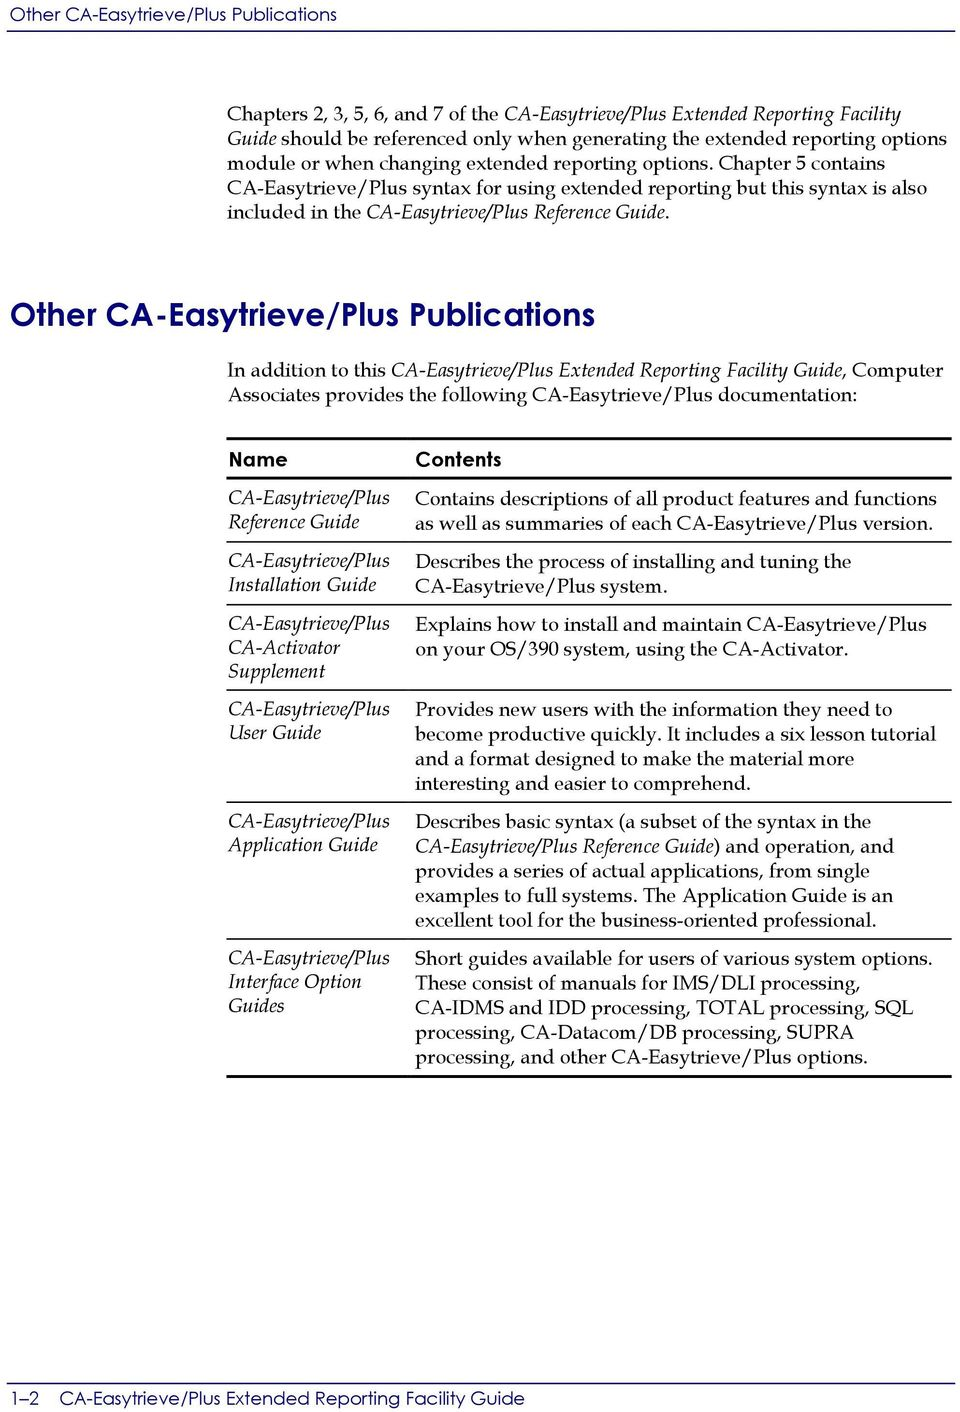 Chapter 5 contains CA-Easytrieve/Plus syntax for using extended reporting but this syntax is also included in the CA-Easytrieve/Plus Reference Guide.